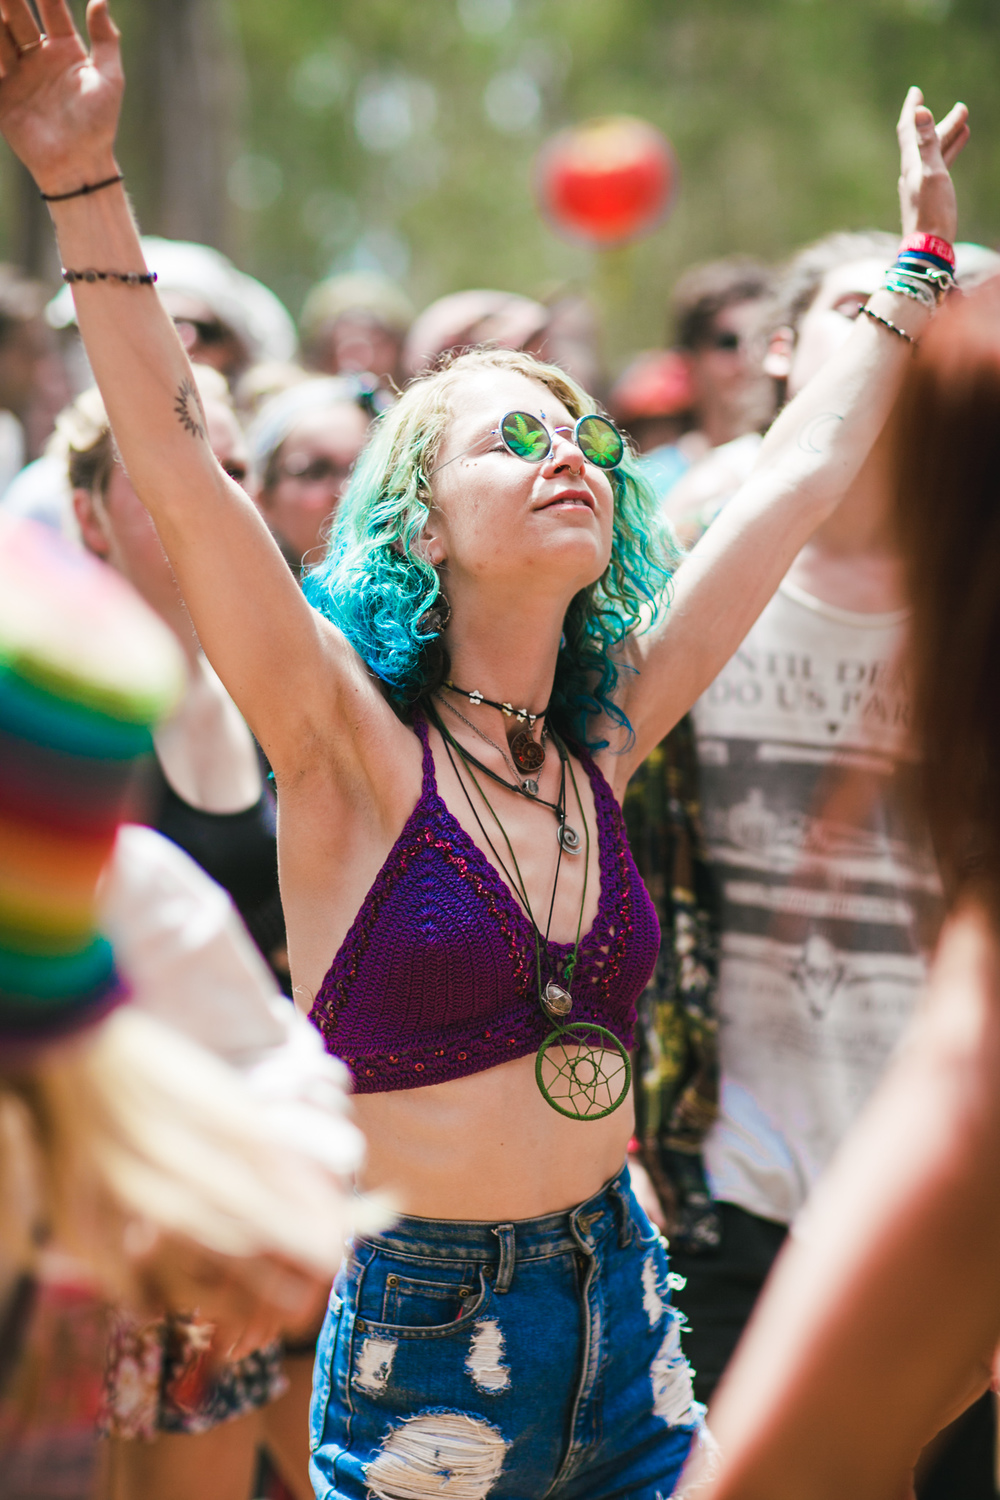 VOENA_STRAWBERRY_FIELDS_FESTIVAL_2014_PHOTOS_DOOF_AUSTRALIA-70.jpg